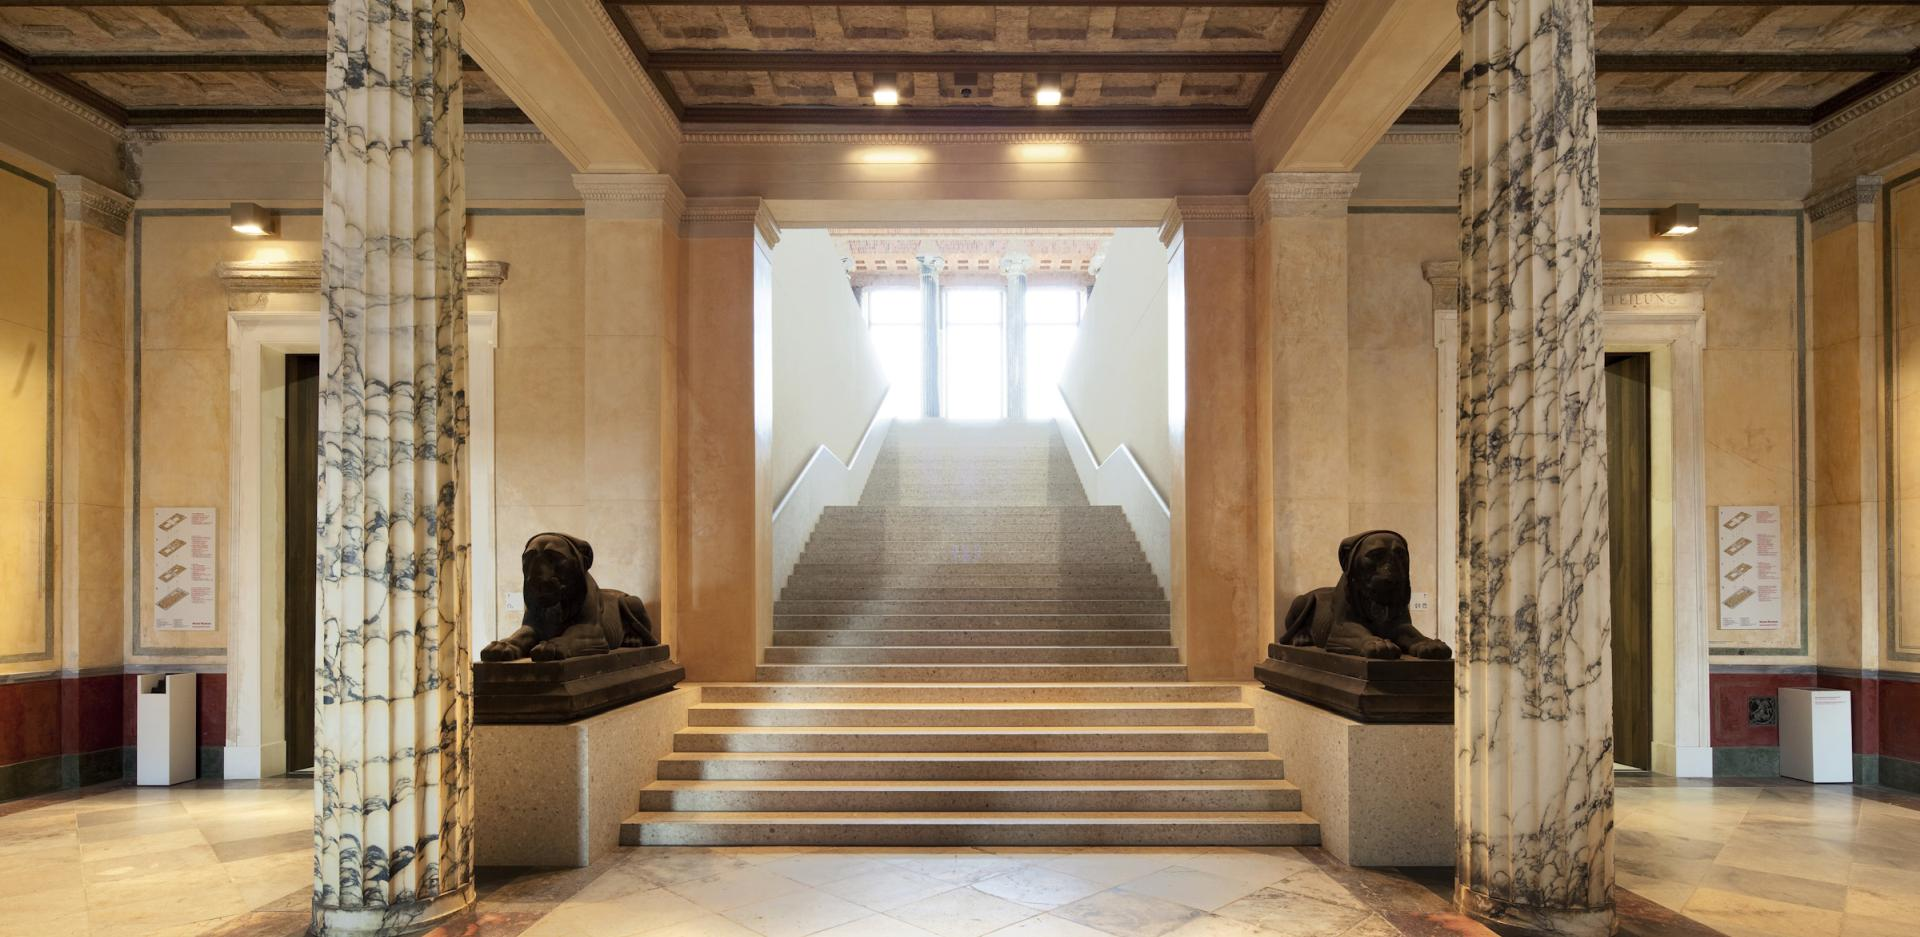 Vestibule of the Neues Museum